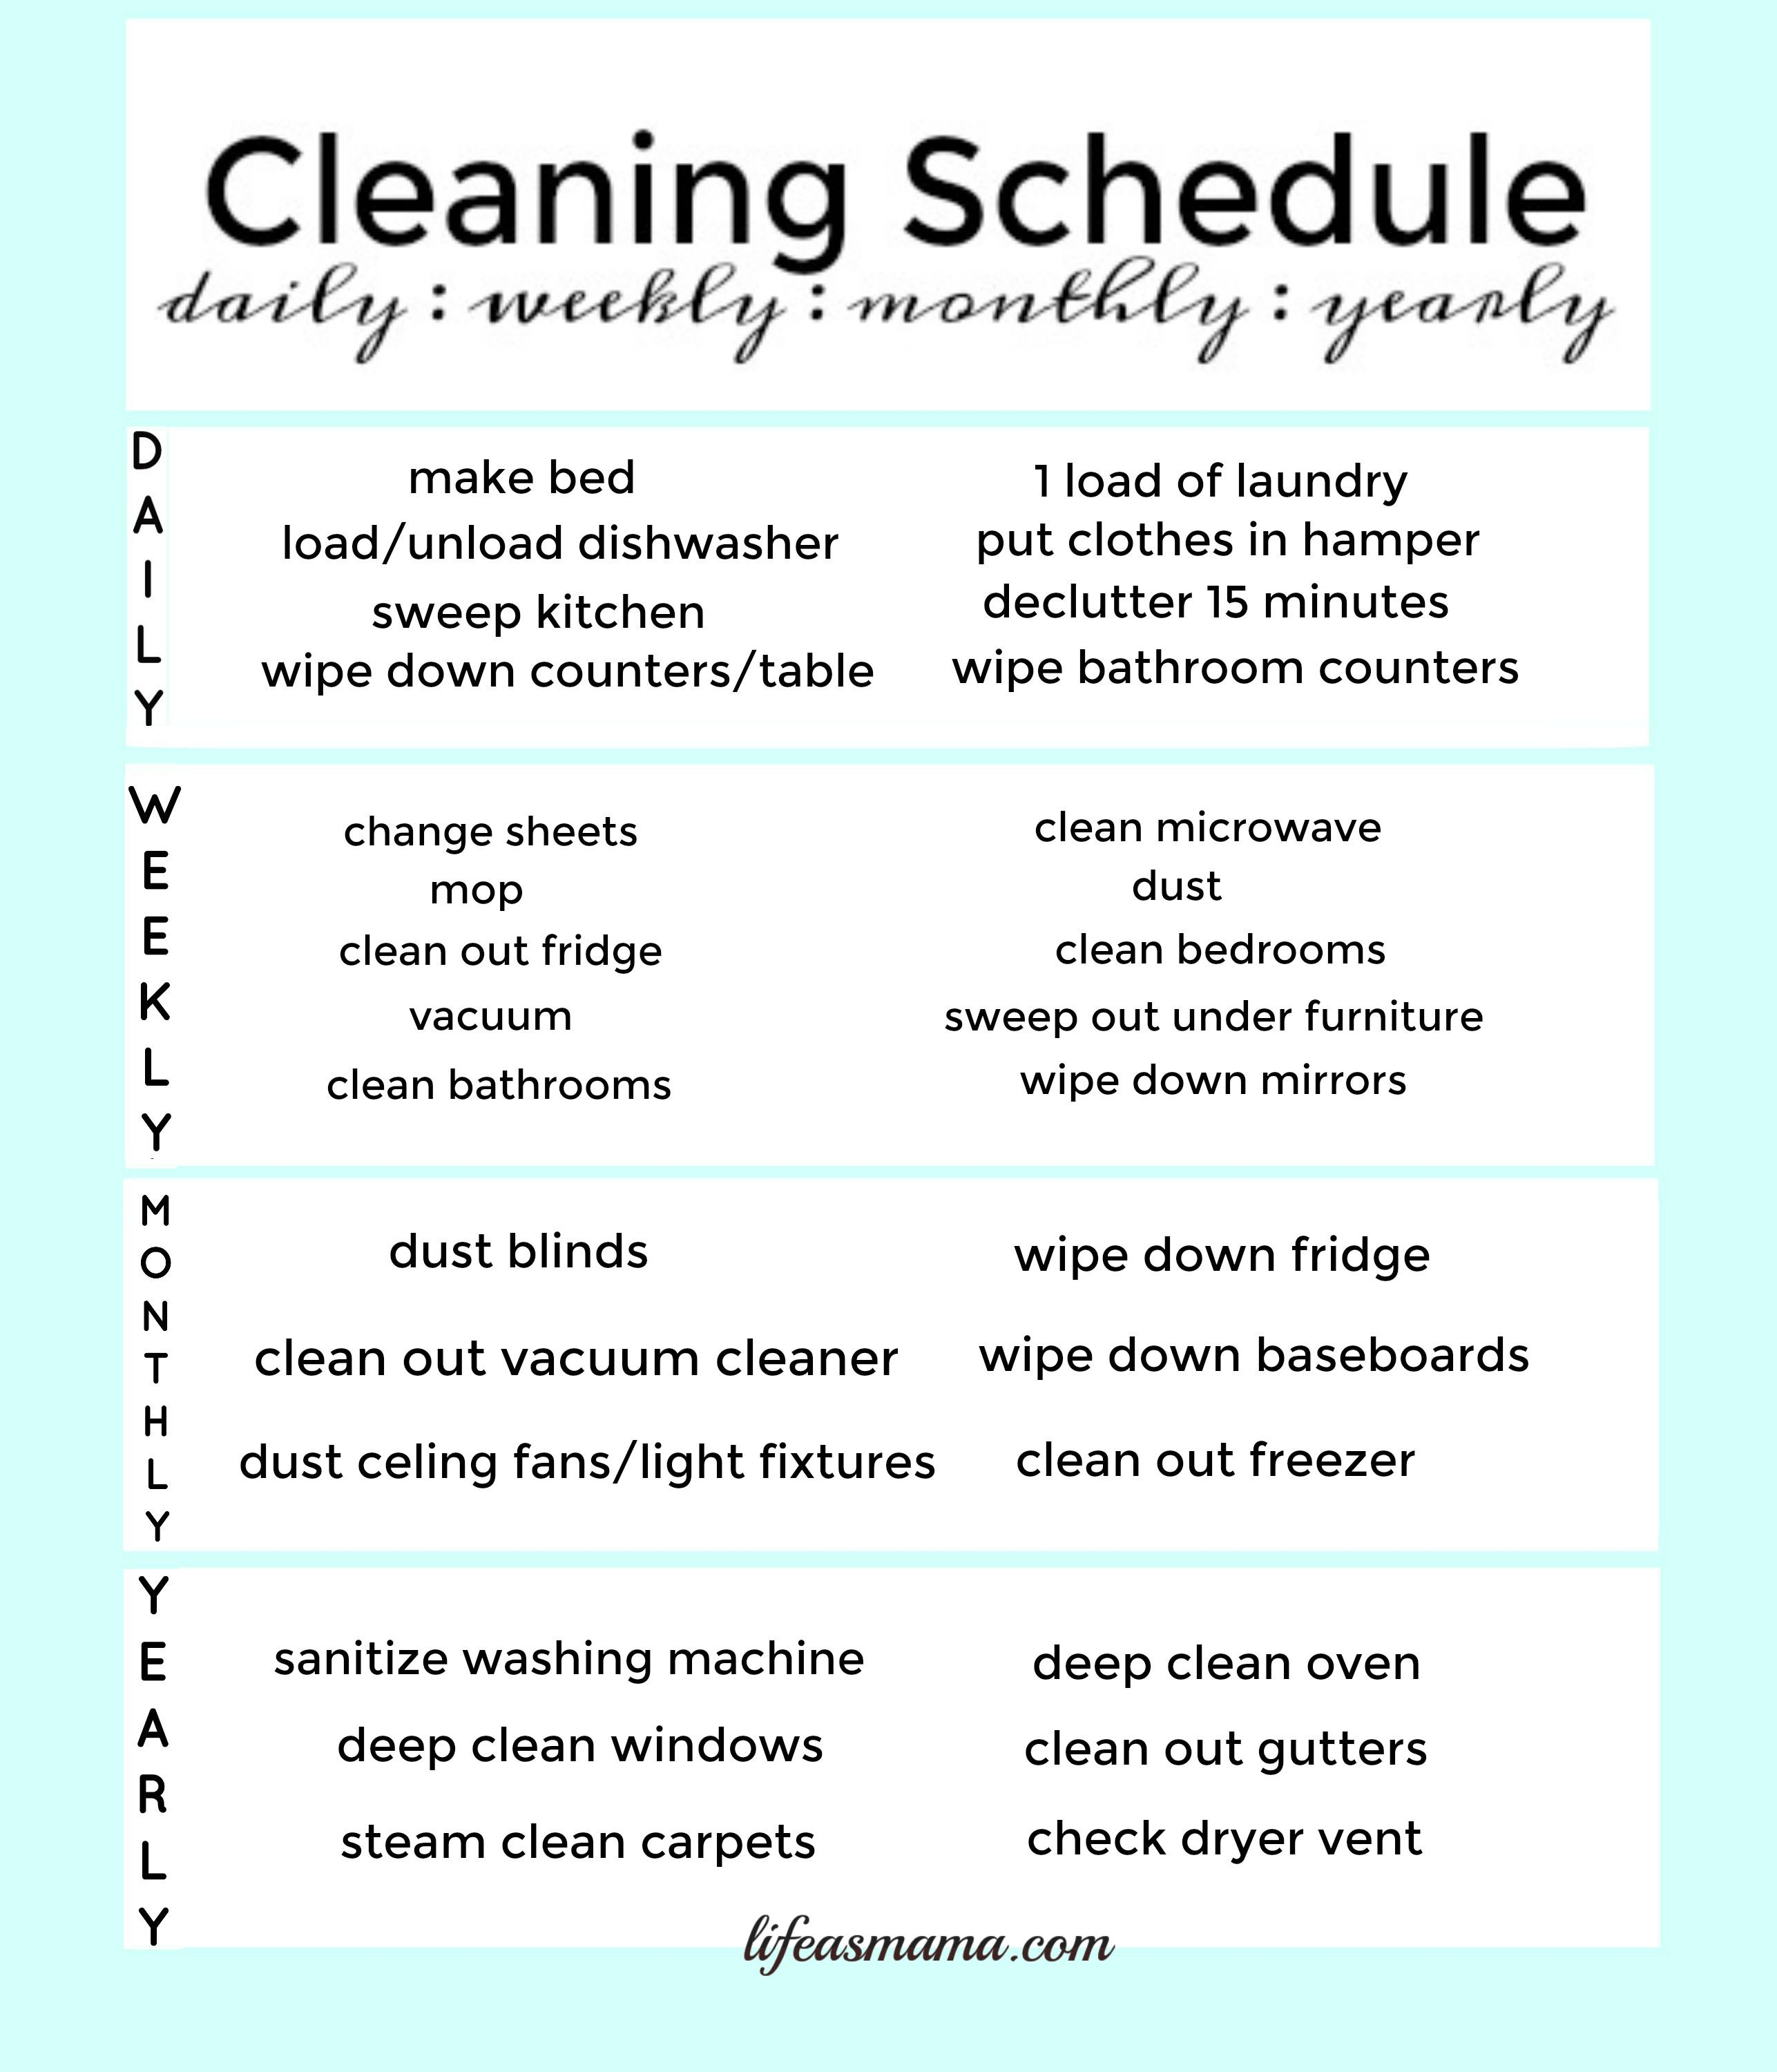 monthly cleaning schedule